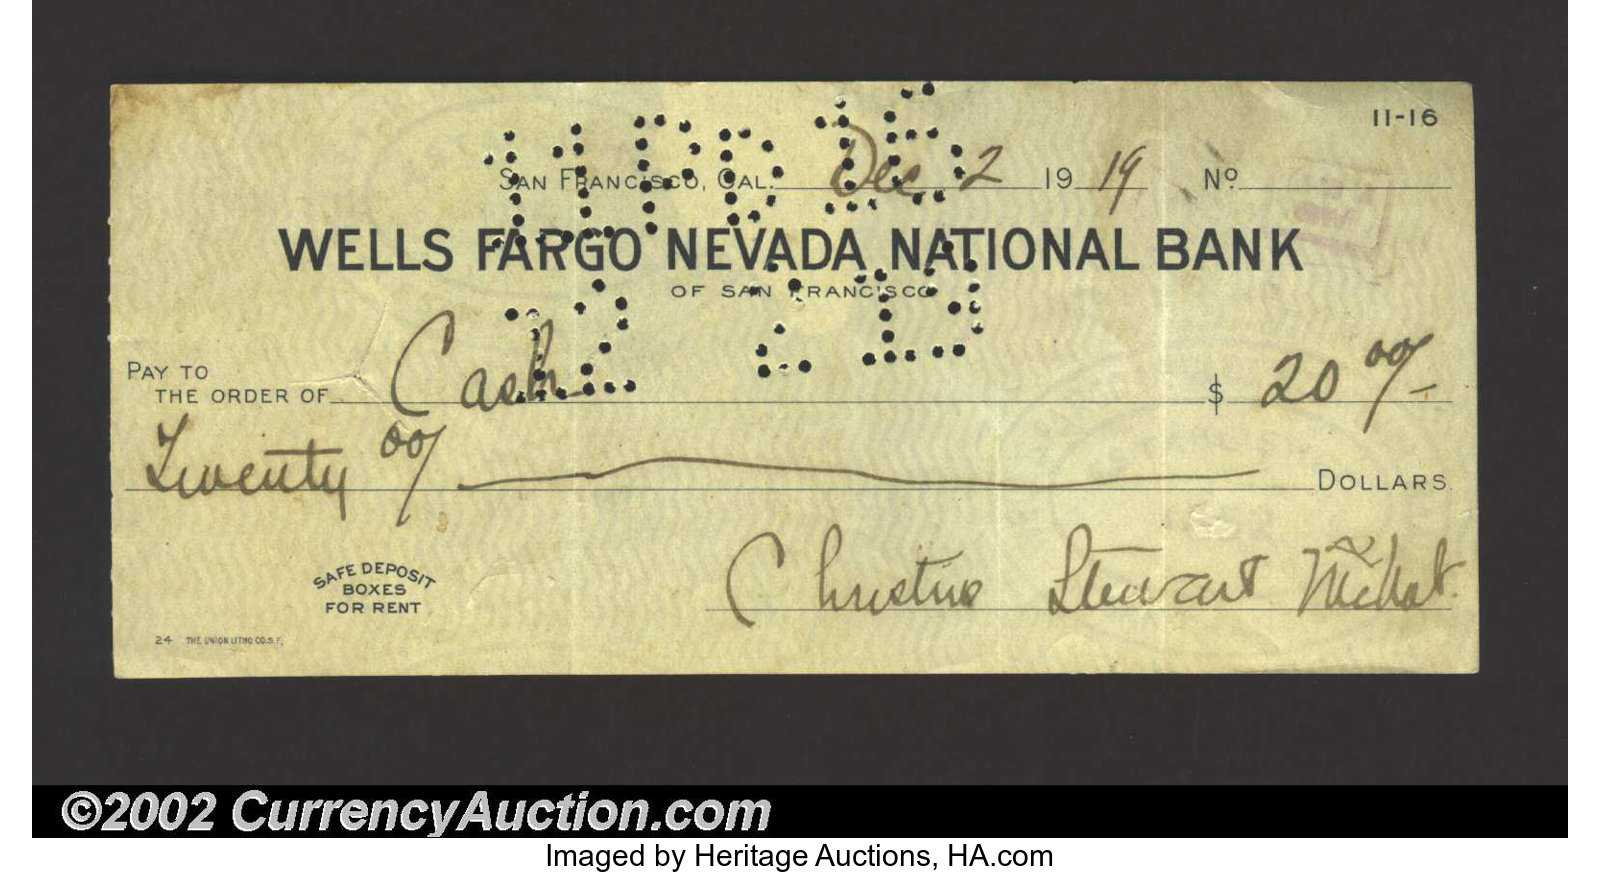 1919 Check from the Wells Fargo Nevada National Bank, San